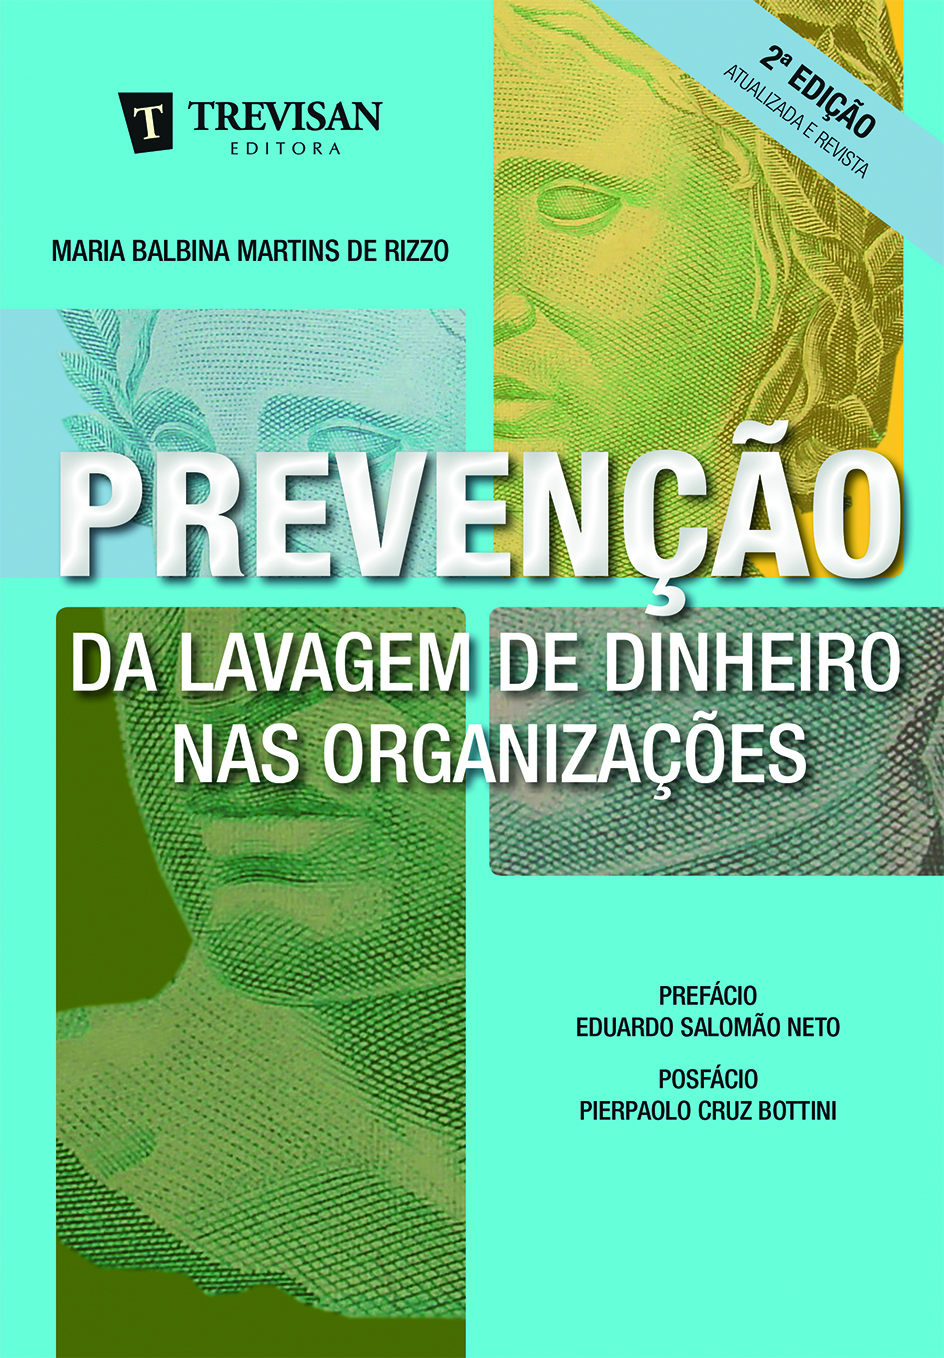 Prevenção da lavagem de dinheiro nas organizações - 2ª Edição